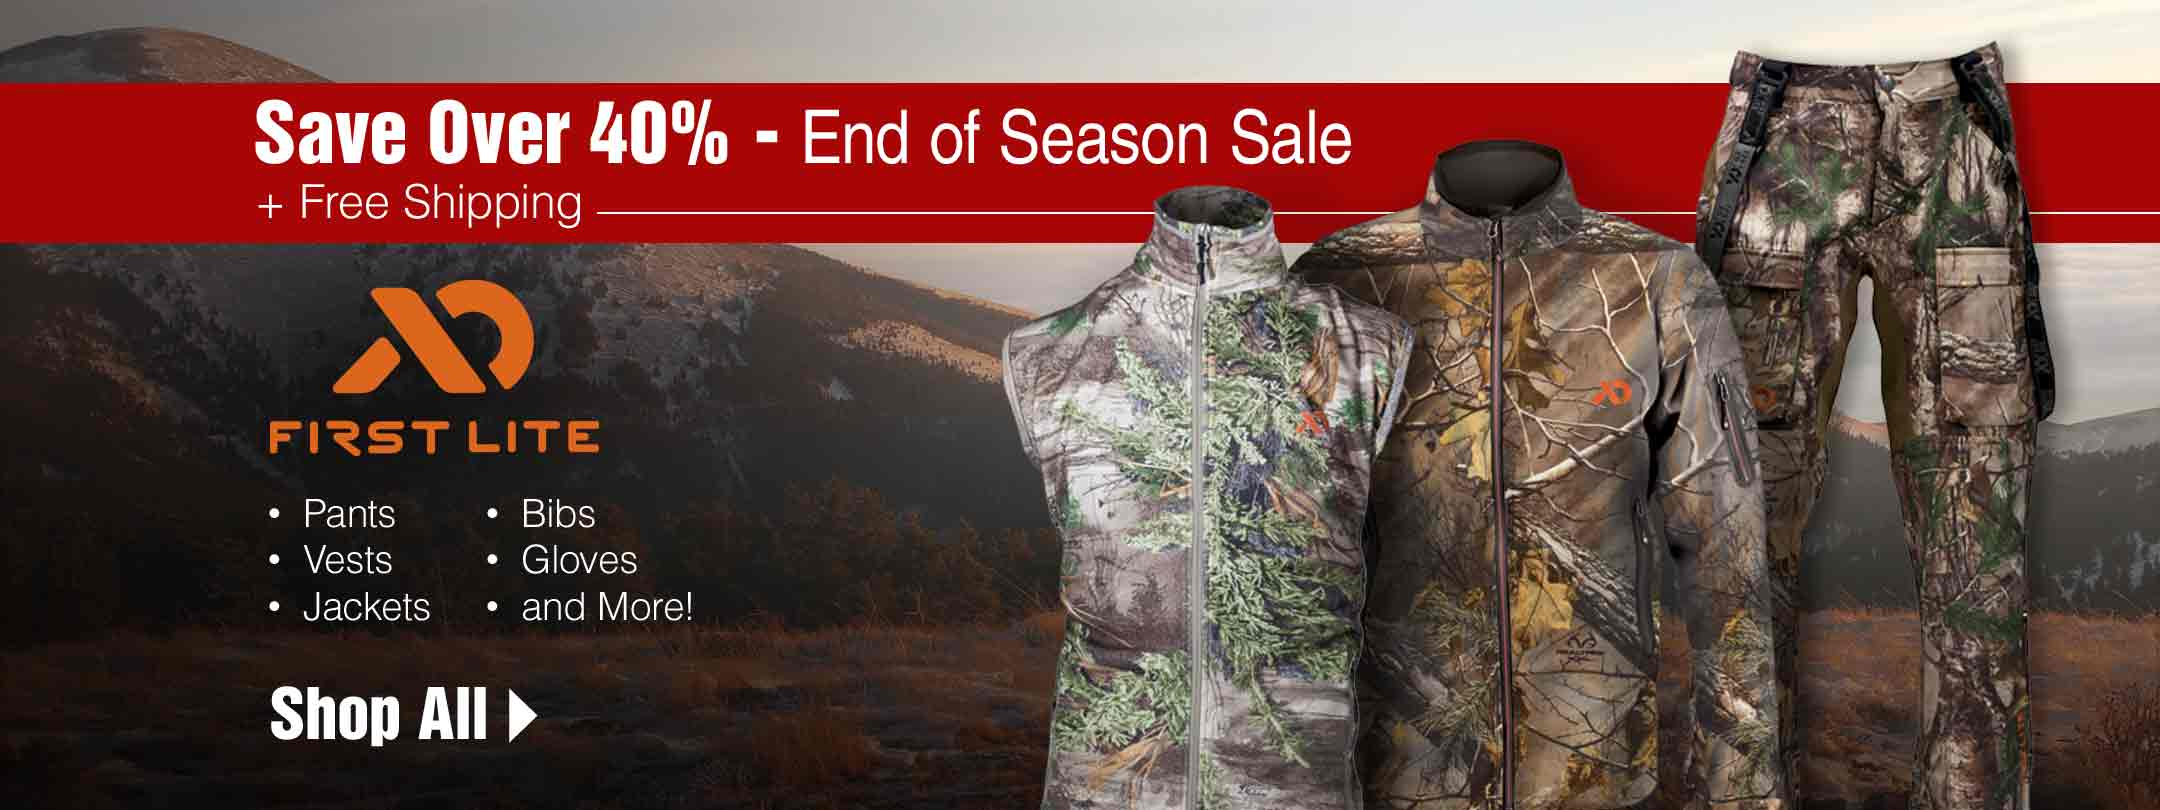 Save Over 40% on First Lite End of Season Sale